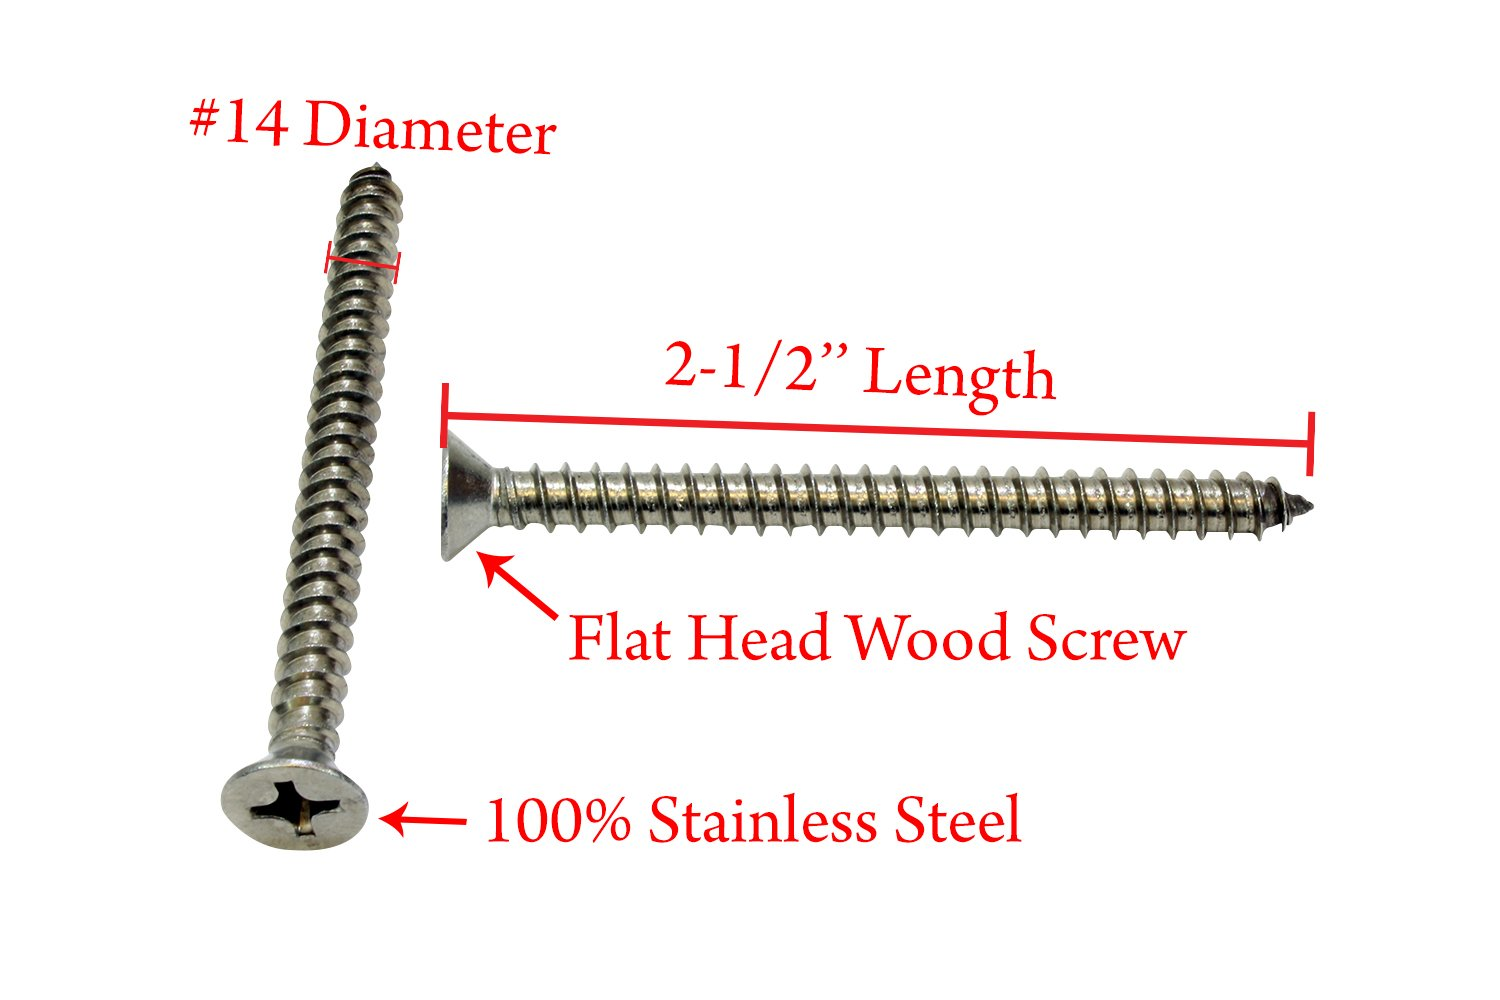 25 pc #12 X 1-1//2 Stainless Flat Head Phillips Wood Screw, Stainless Steel Screw by Bolt Dropper 304 18-8